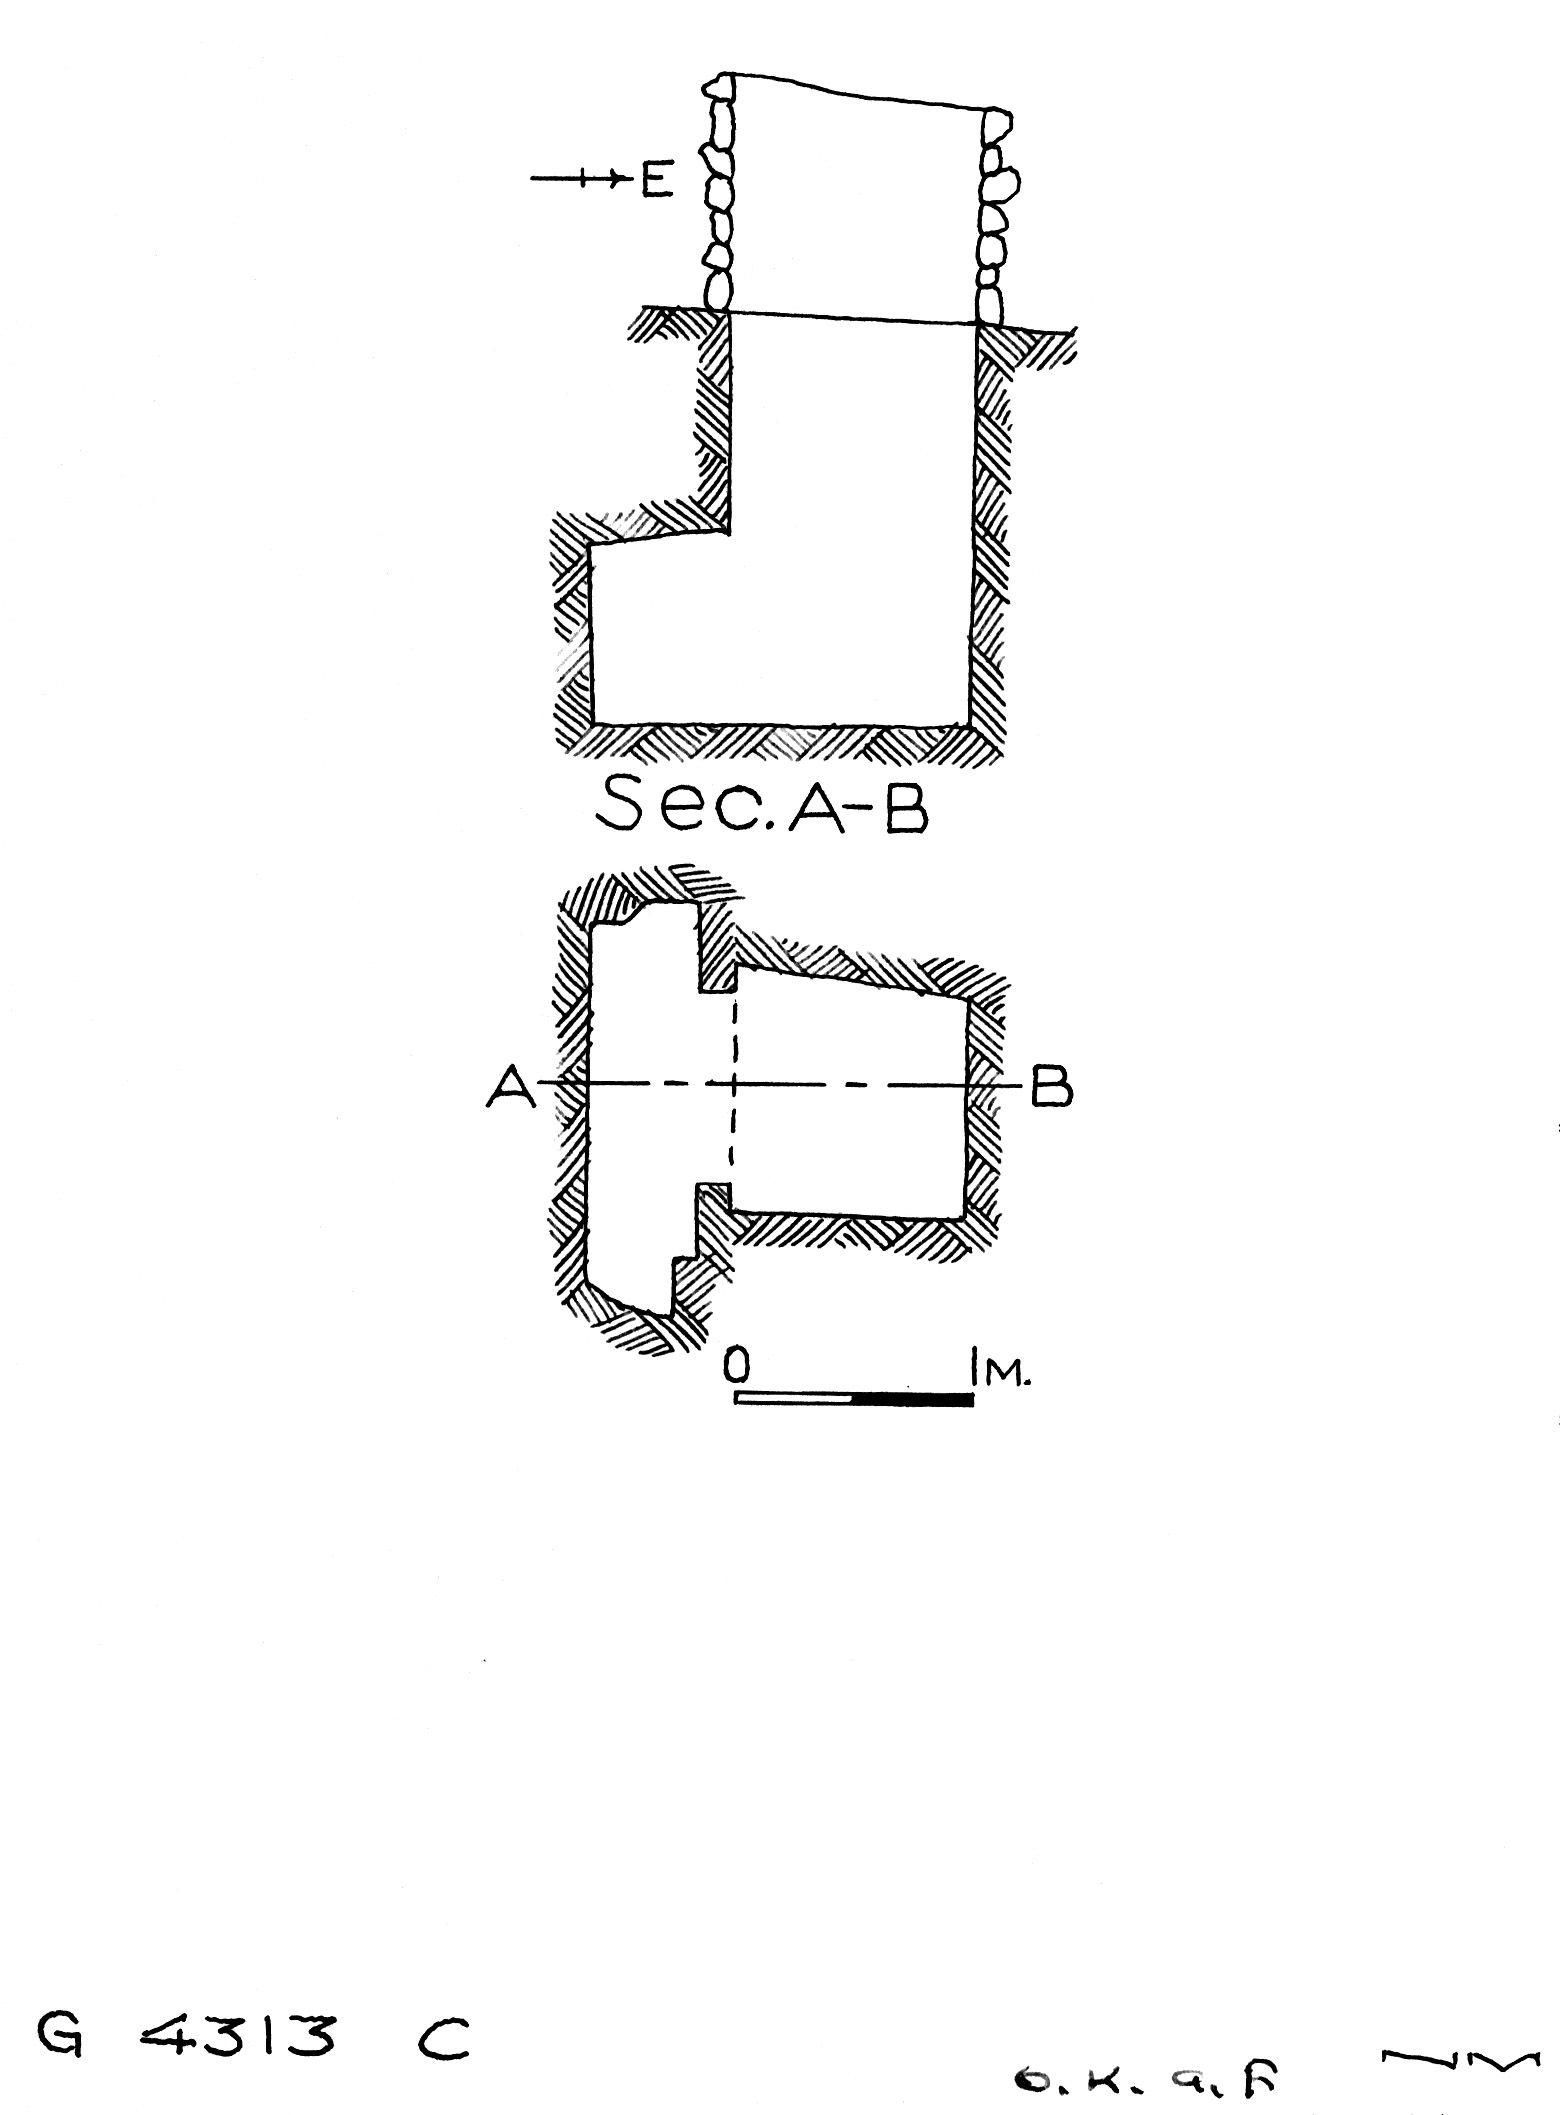 Maps and plans: G 4313, Shaft C